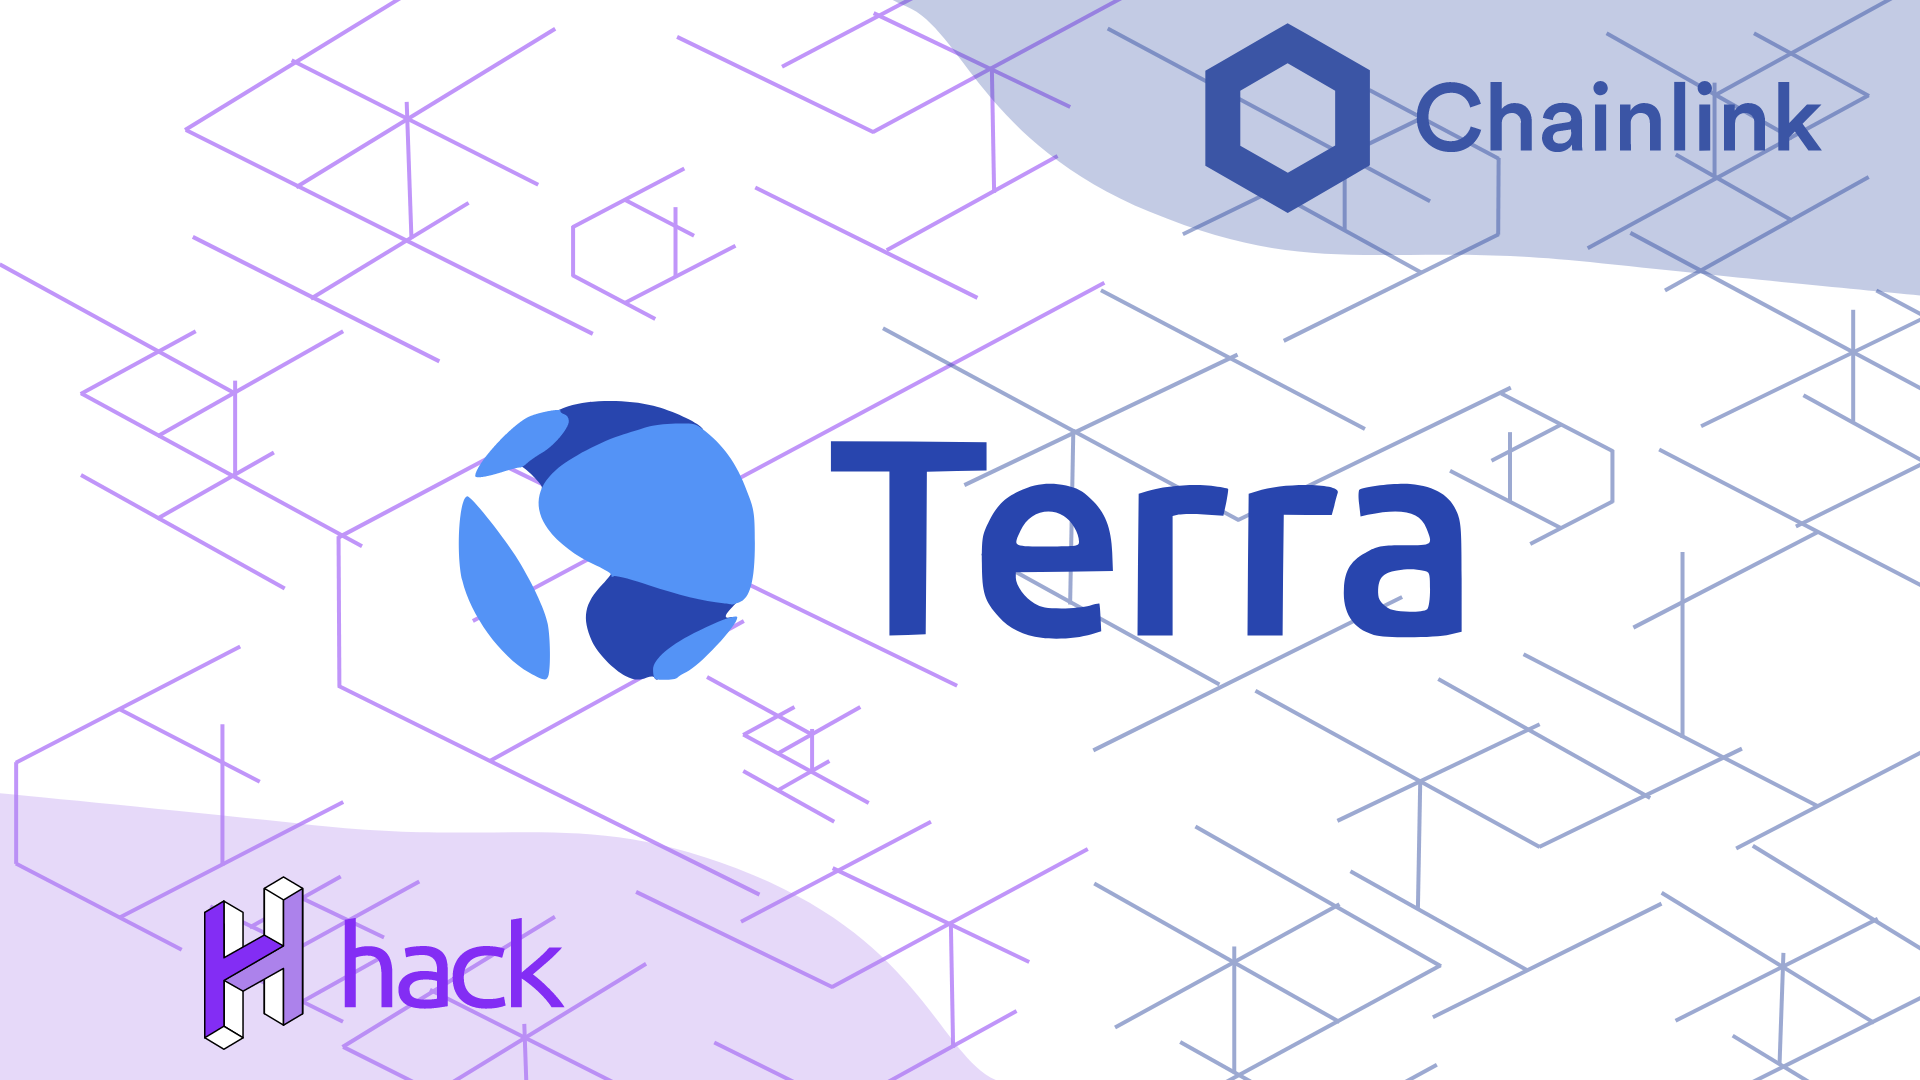 Hack is Awarded Grant for Native Integration of Chainlink on Terra 1